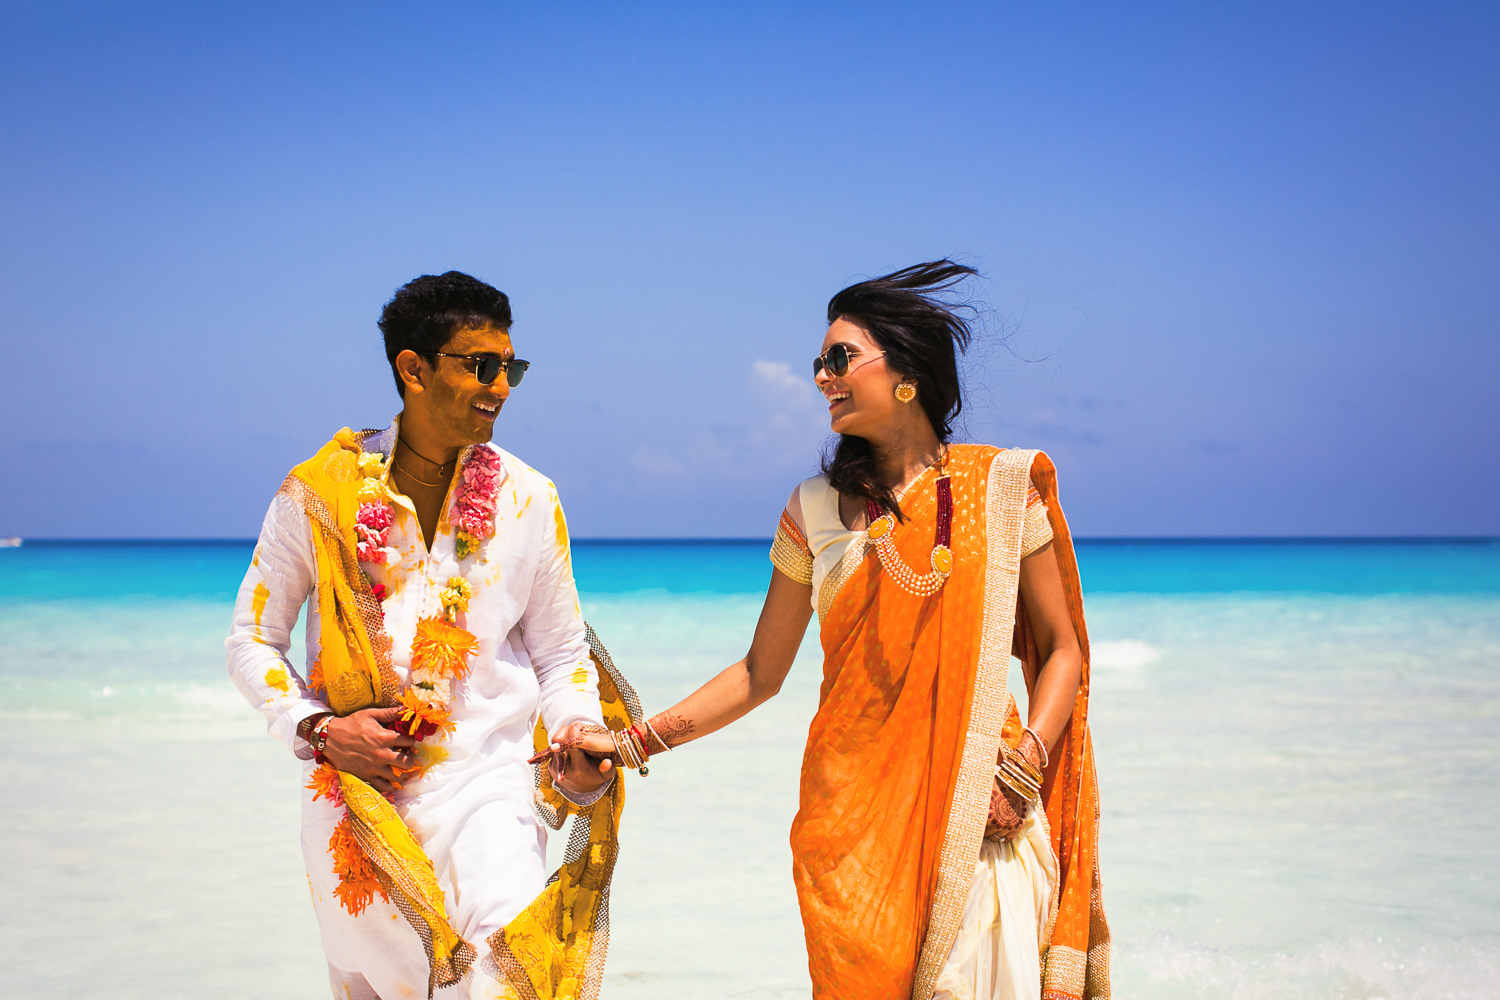 Paradisus Cancun Indian Wedding - Bride and Groom on the beach